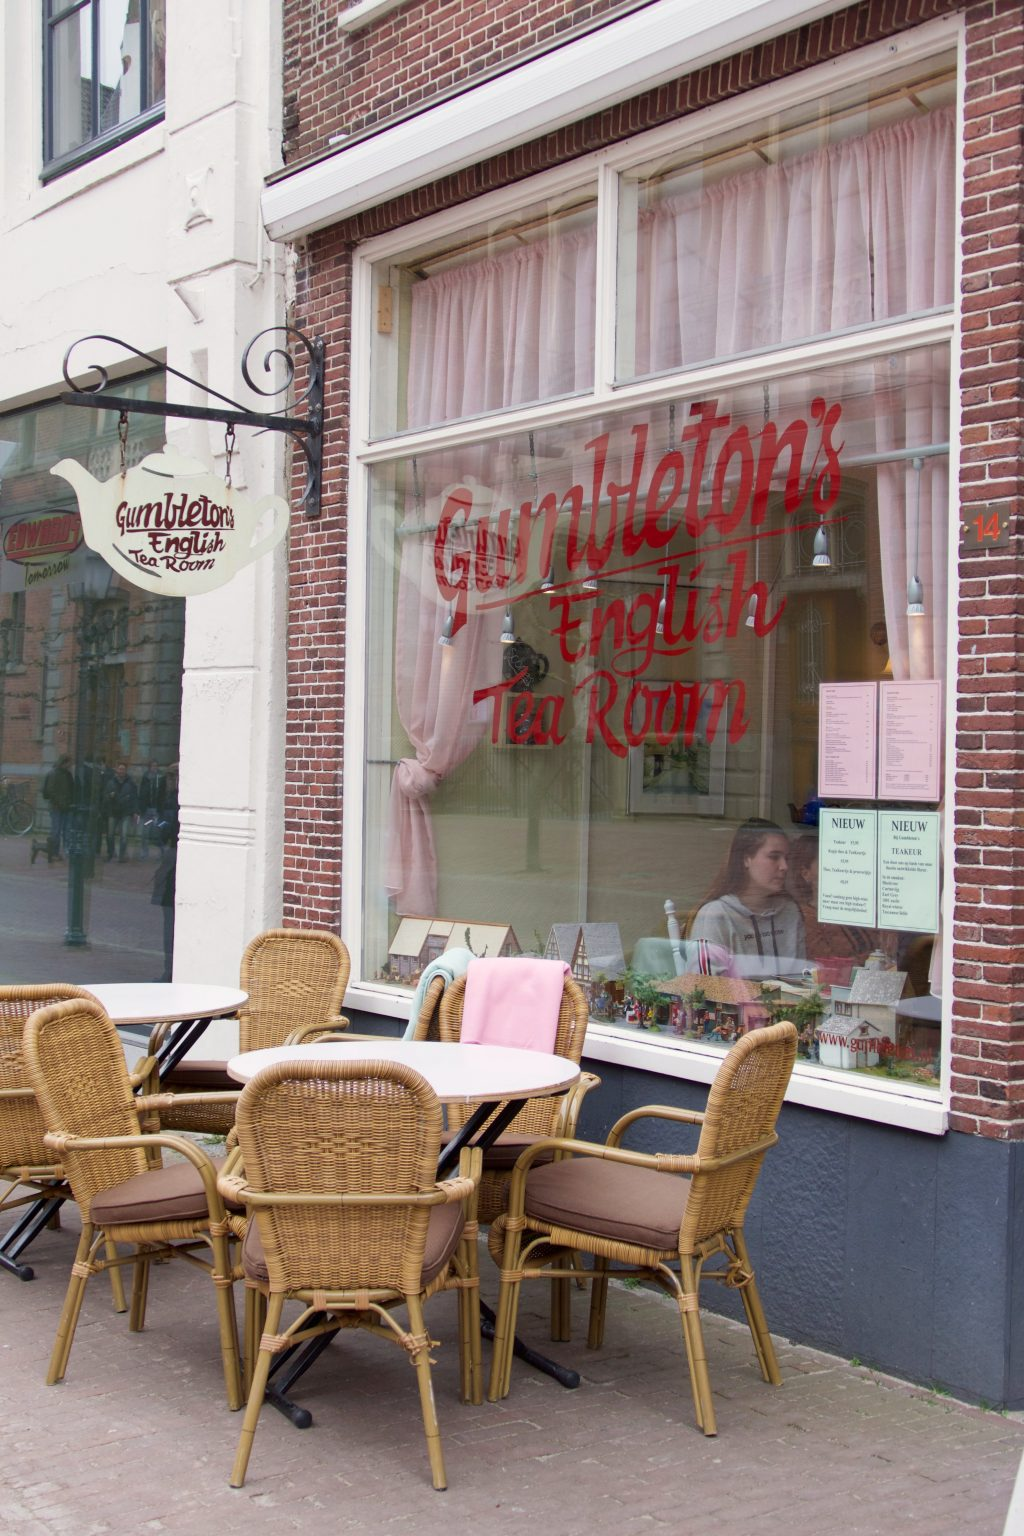 Hotspot: Gumbleton's Tea Room in Hoorn